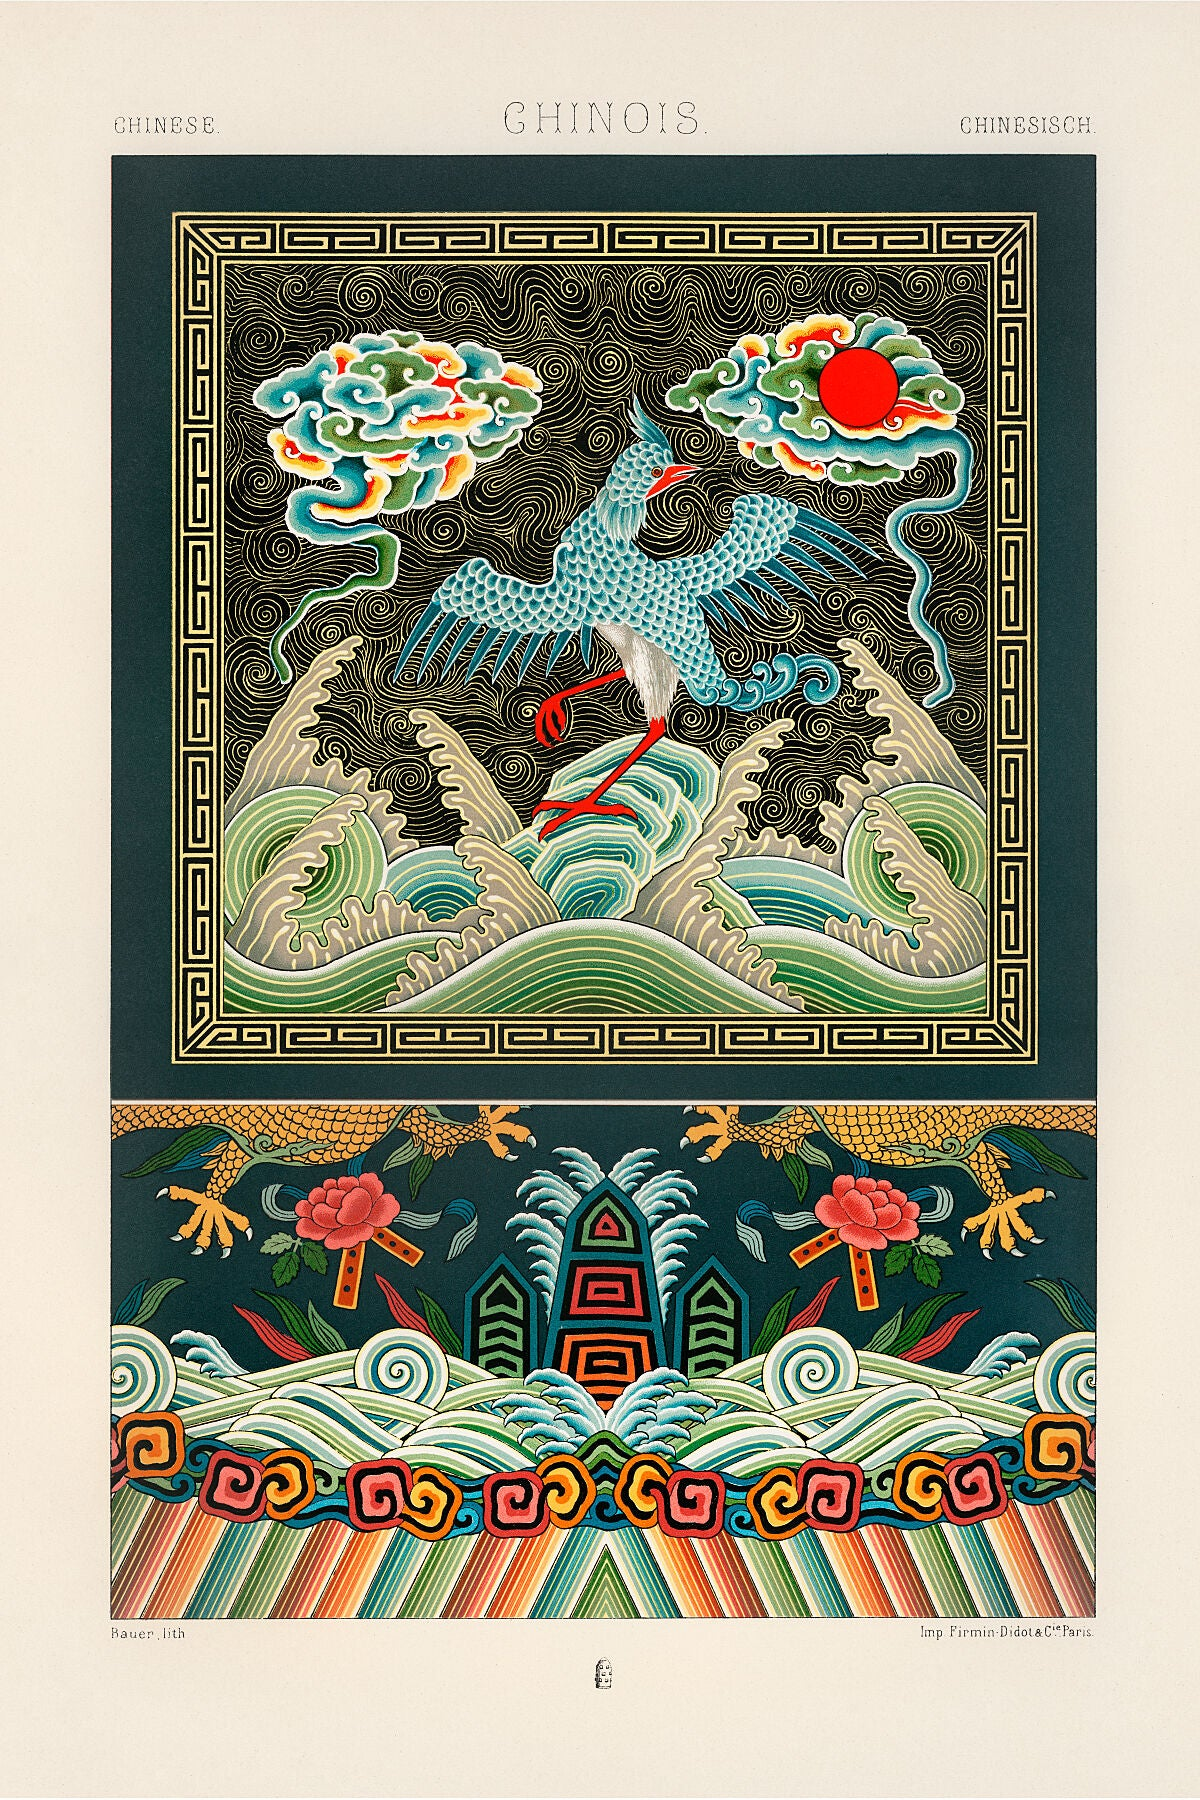 Chinese Pattern from L'Ornement Polychrome (1888) by Albert Racinet (1825–1893).